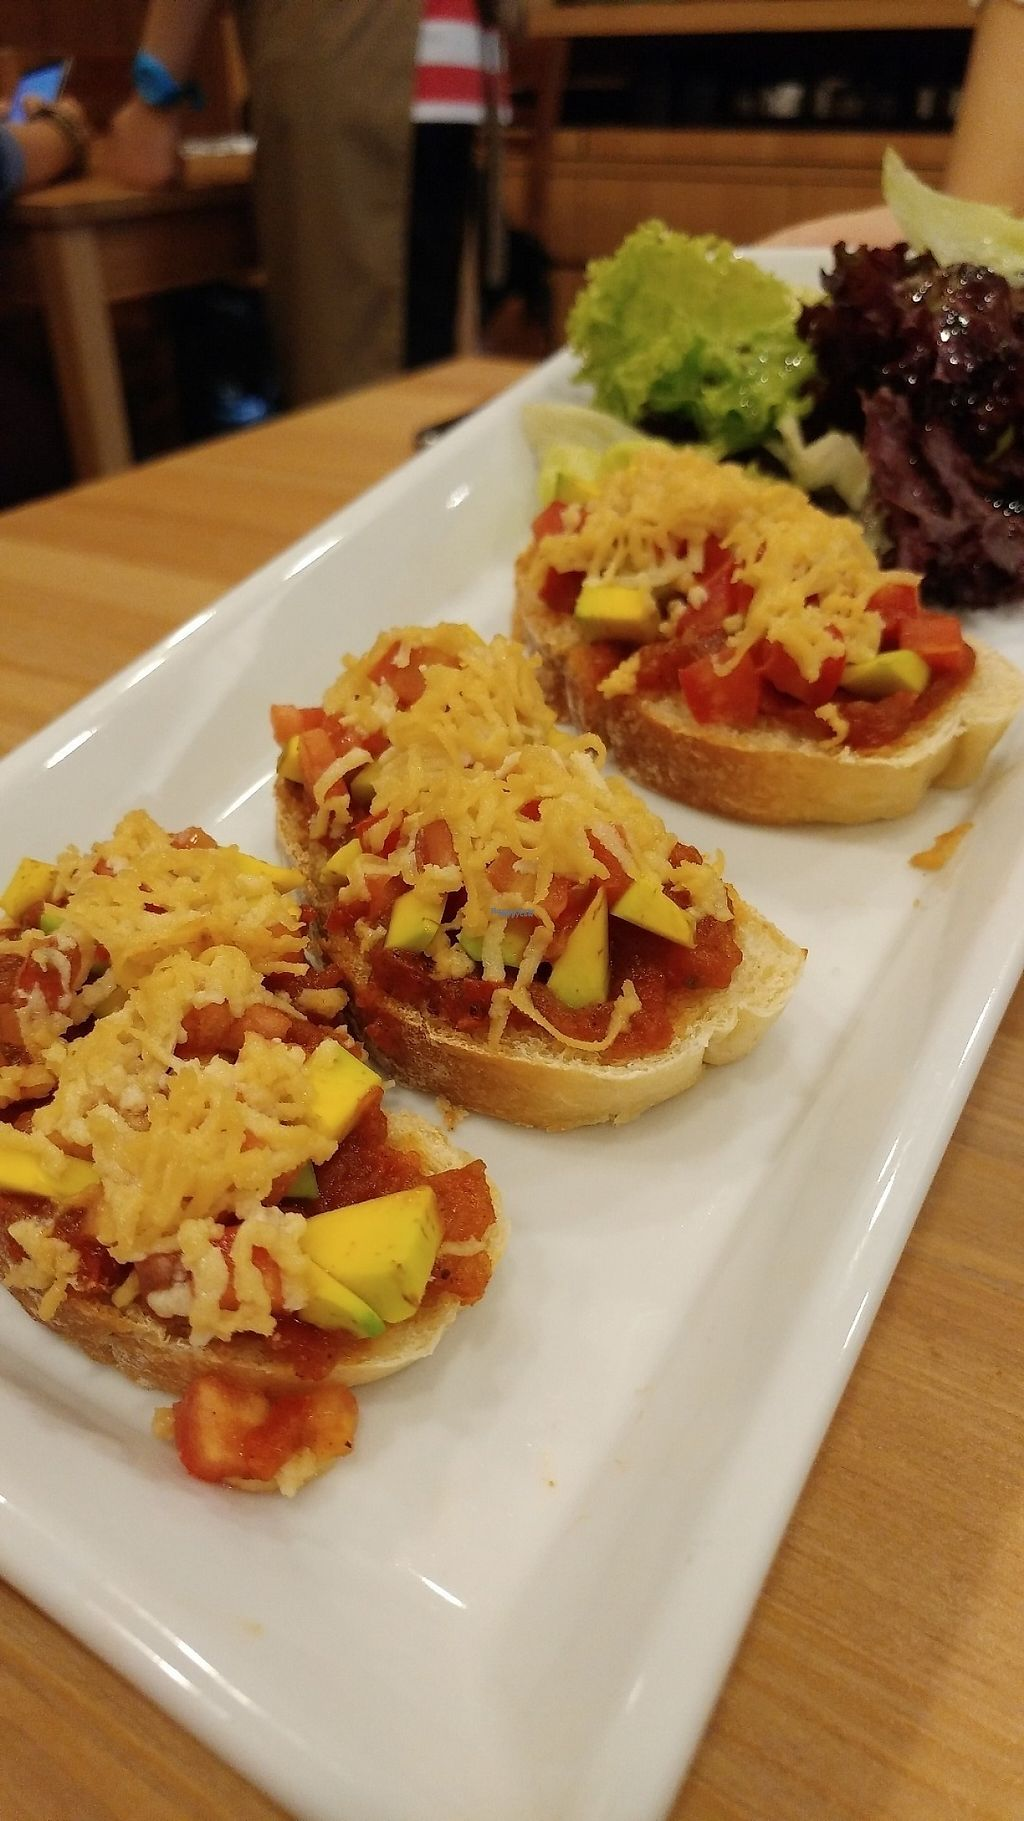 """Photo of LN Fortunate Coffee & Ice Cream  by <a href=""""/members/profile/Kaiyun"""">Kaiyun</a> <br/>salsa baguette <br/> March 22, 2017  - <a href='/contact/abuse/image/62991/239377'>Report</a>"""